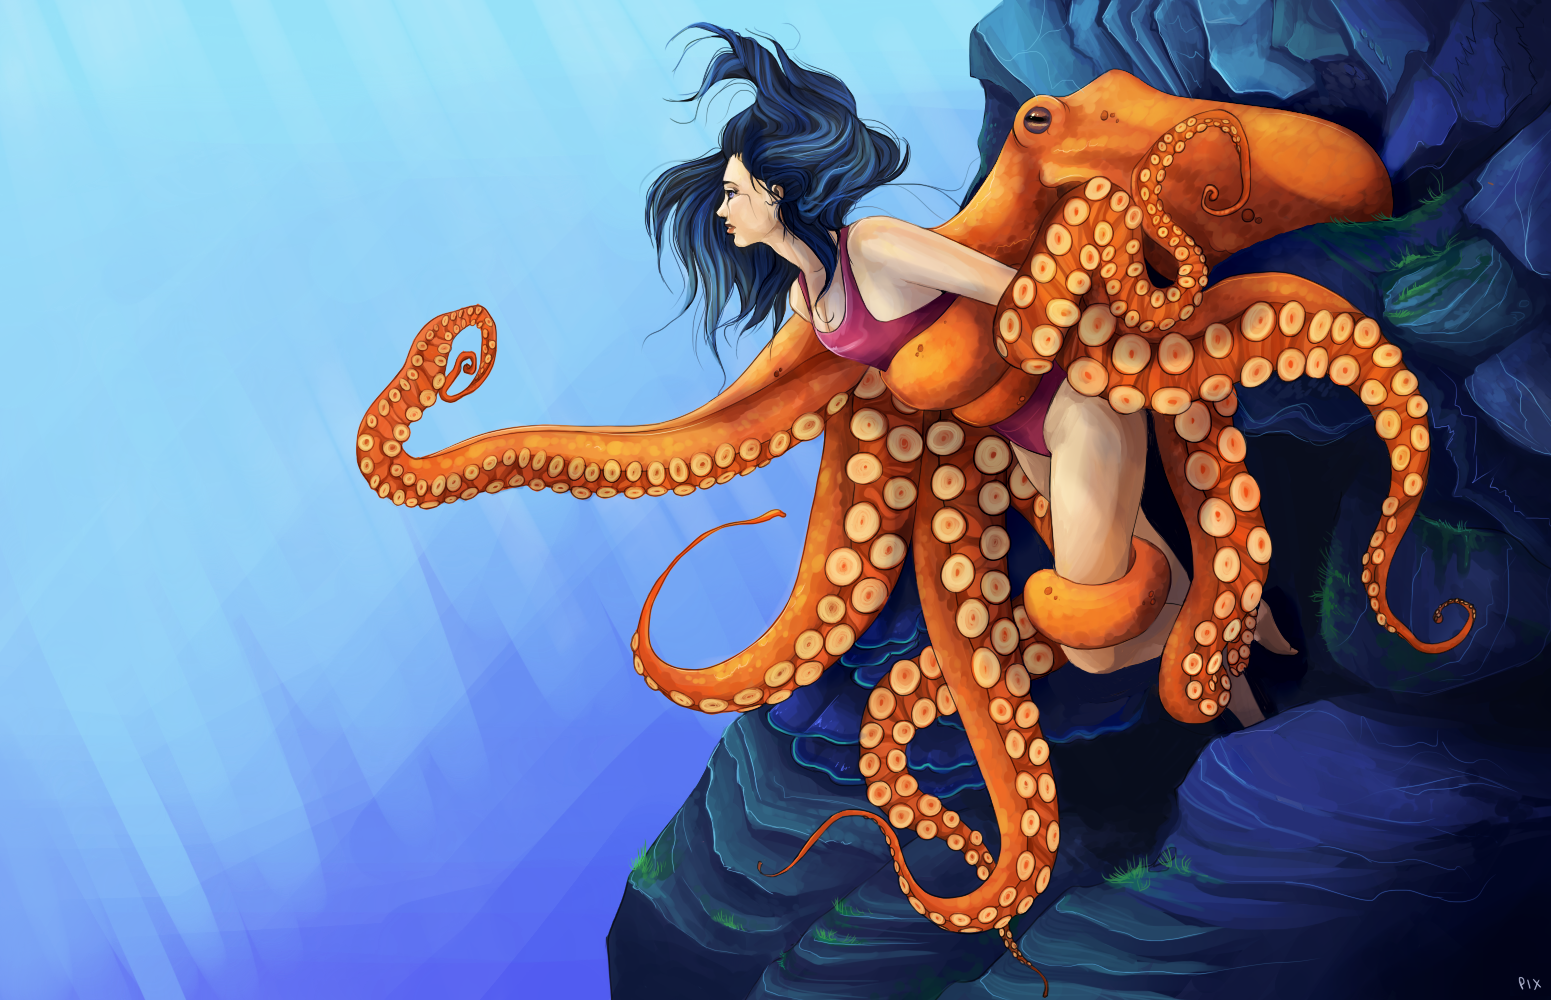 art Octopus sex girl